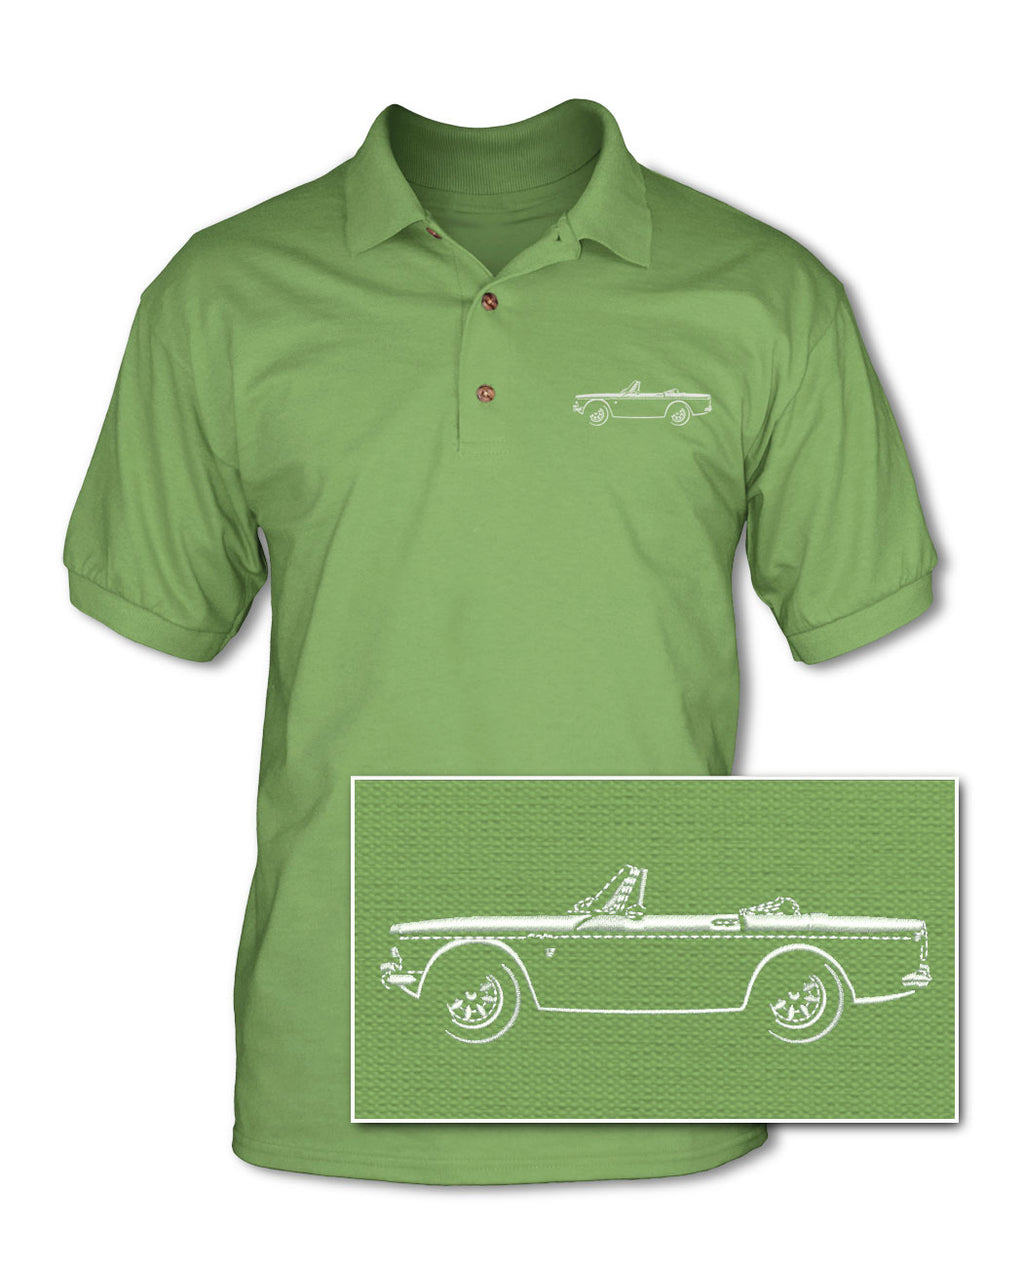 Sunbeam Tiger Convertible Adult Pique Polo Shirt - Side View